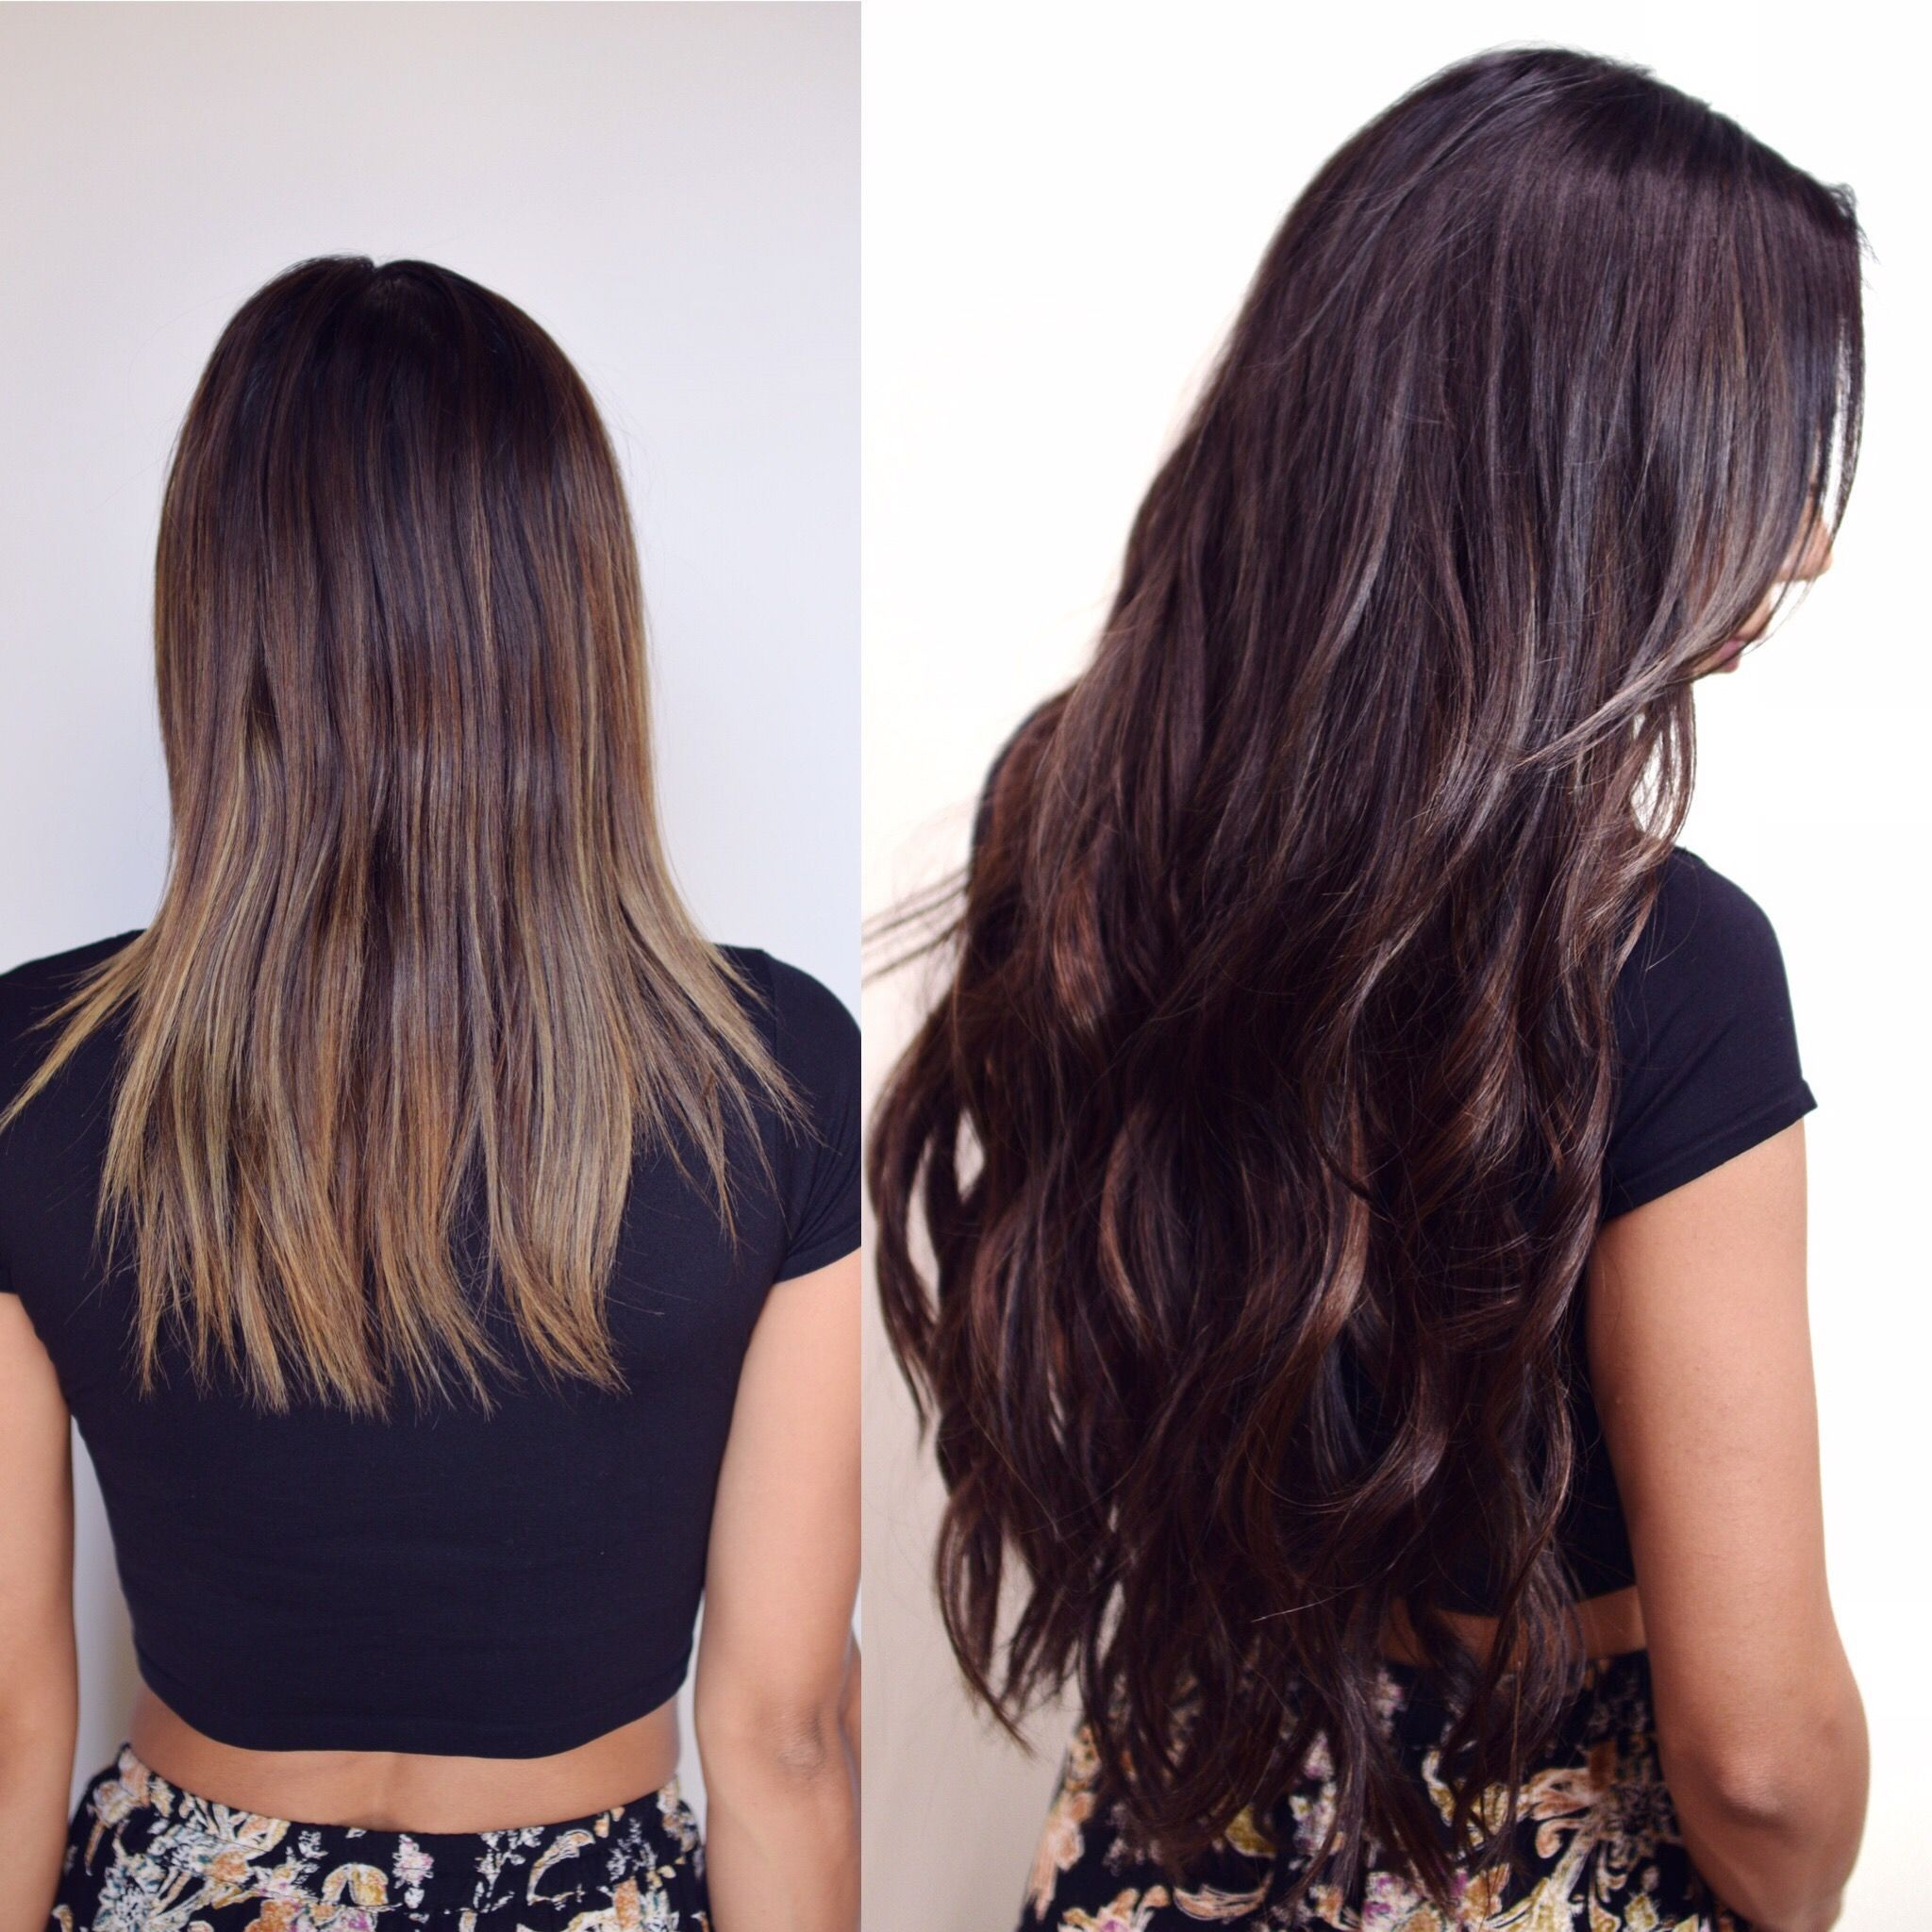 Before and After Brunette with Hand Tied Extensions